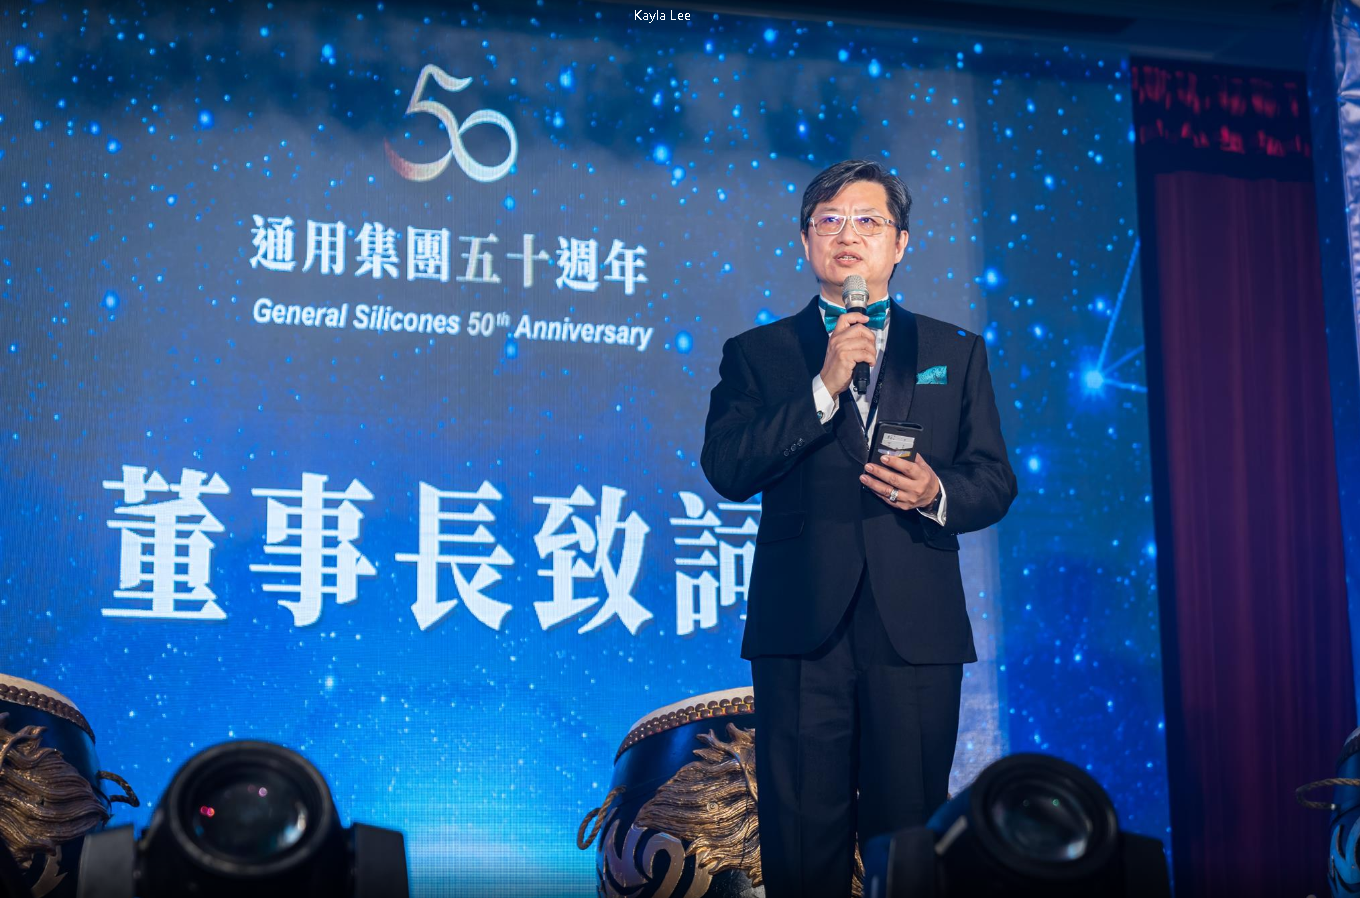 General Silicones 50th Anniversary